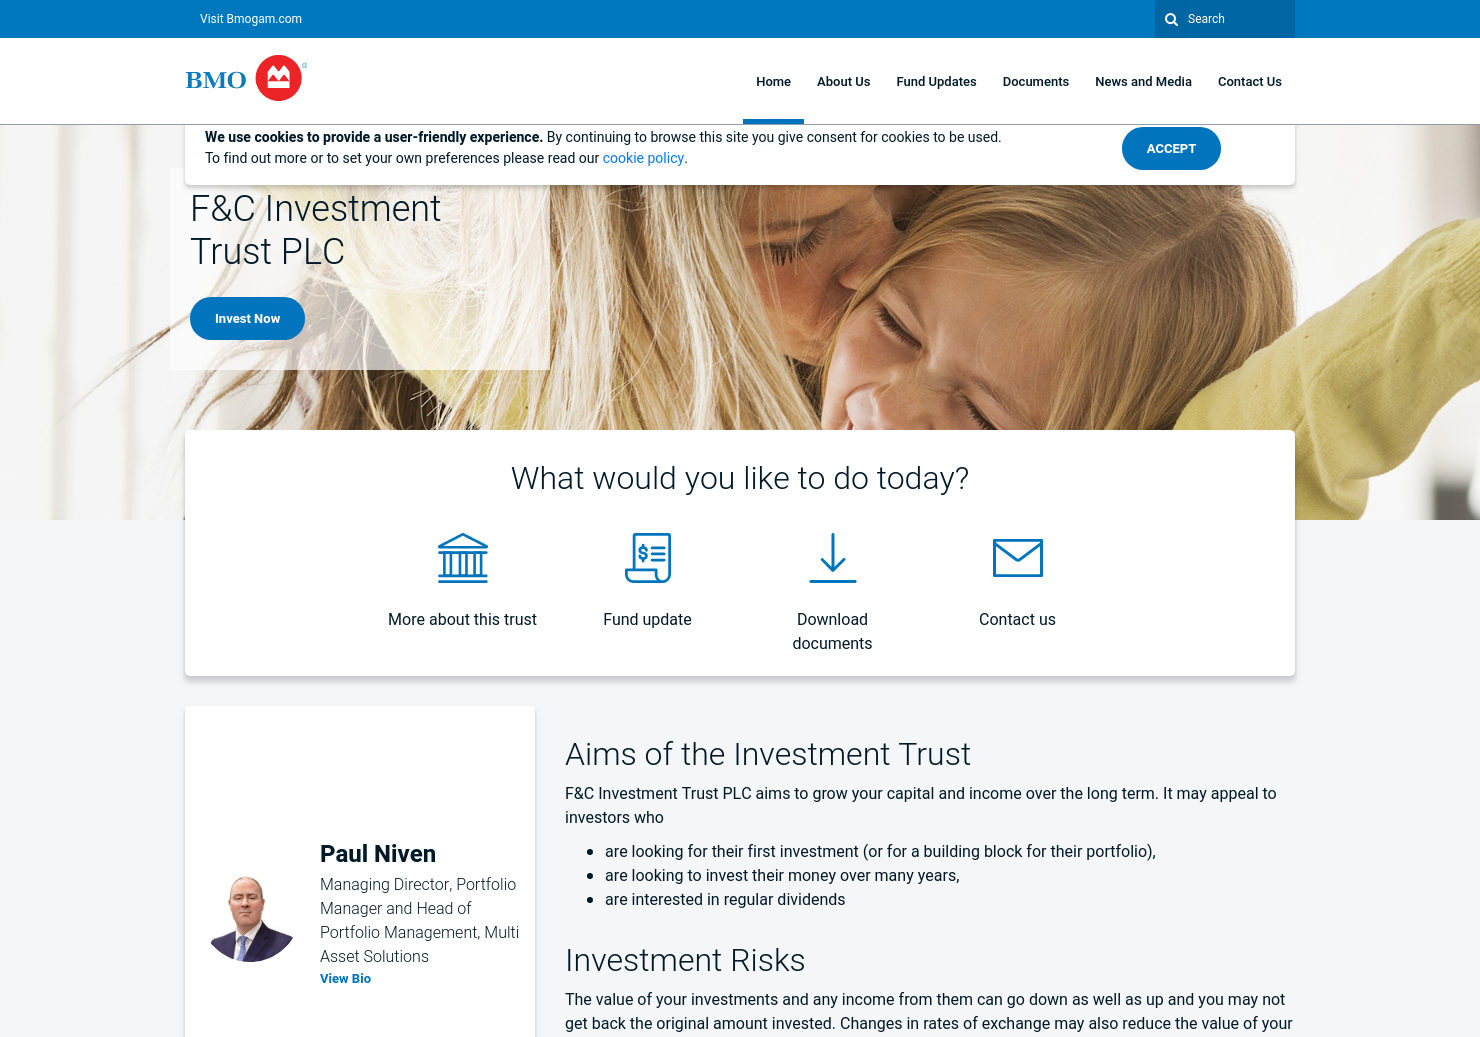 F&C Investment Trust Home Page